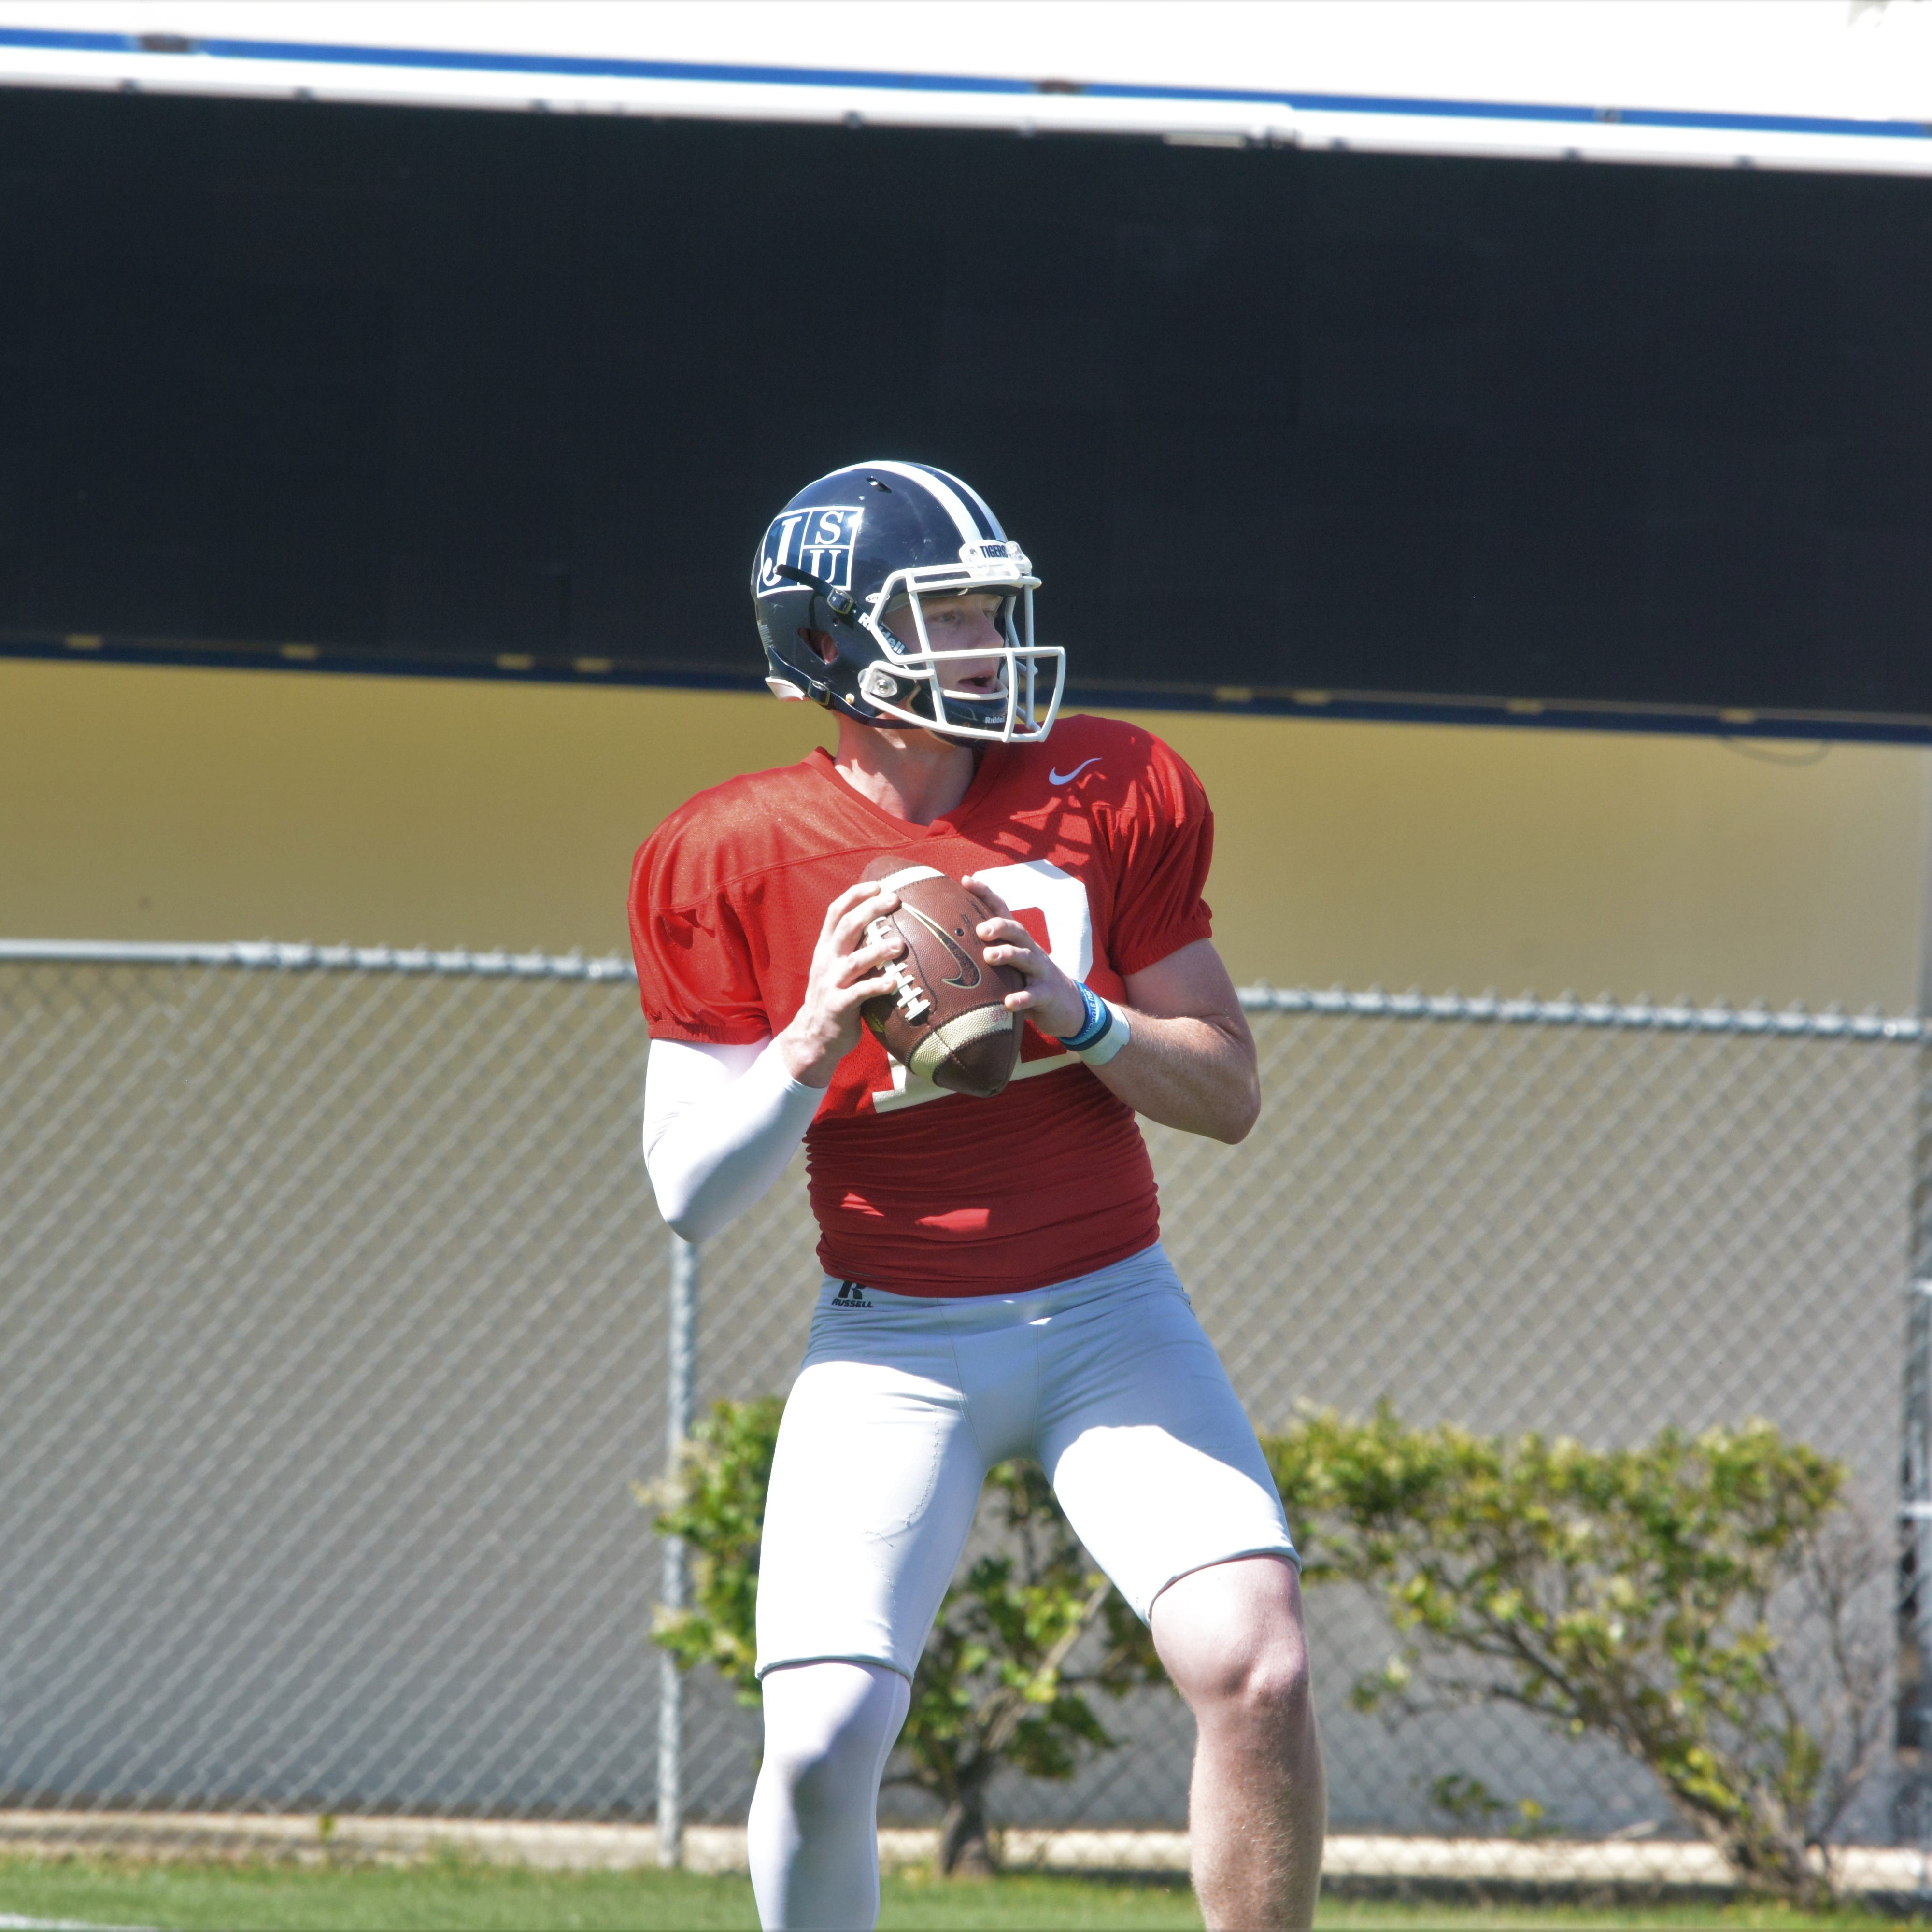 JSU Football: Which quarterback separated from the pack at the final practice?